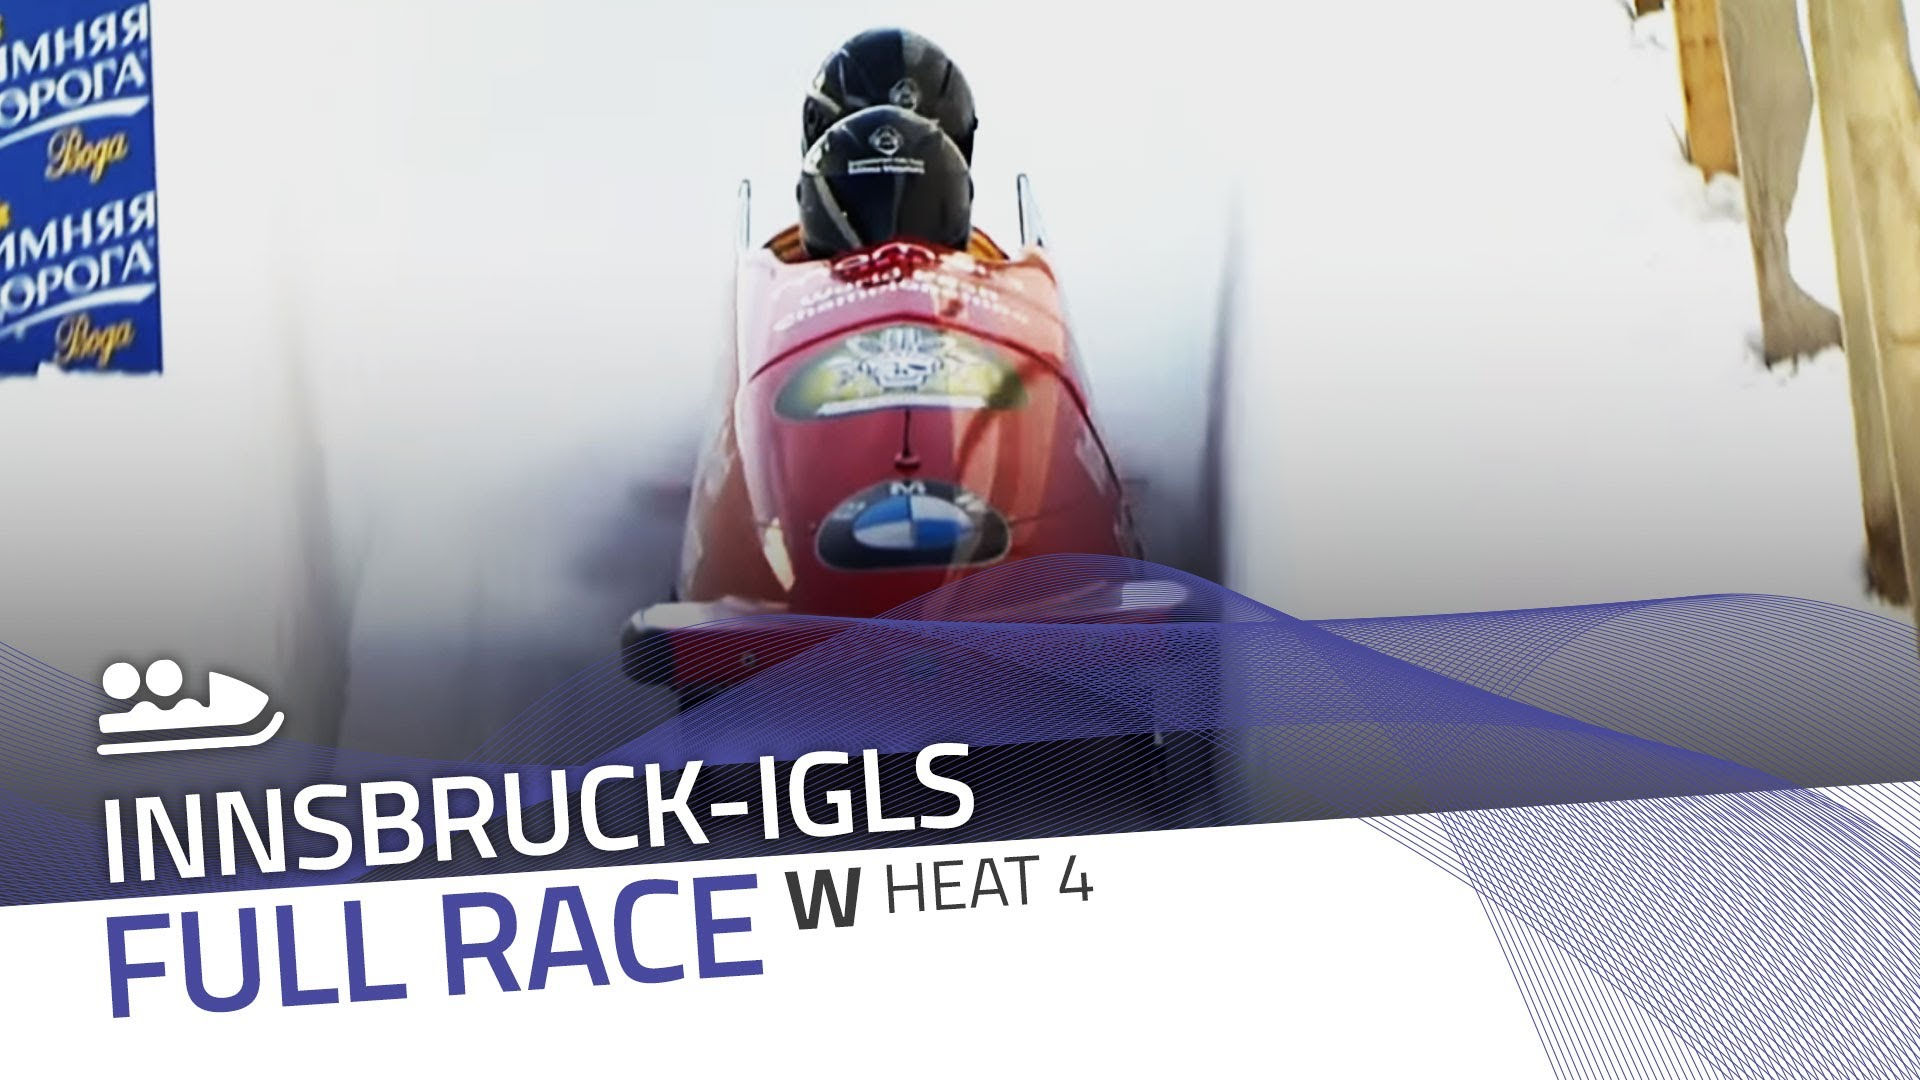 Innsbruck-igls | bmw ibsf world championships 2016 - women's bobsleigh heat 4 | ibsf official